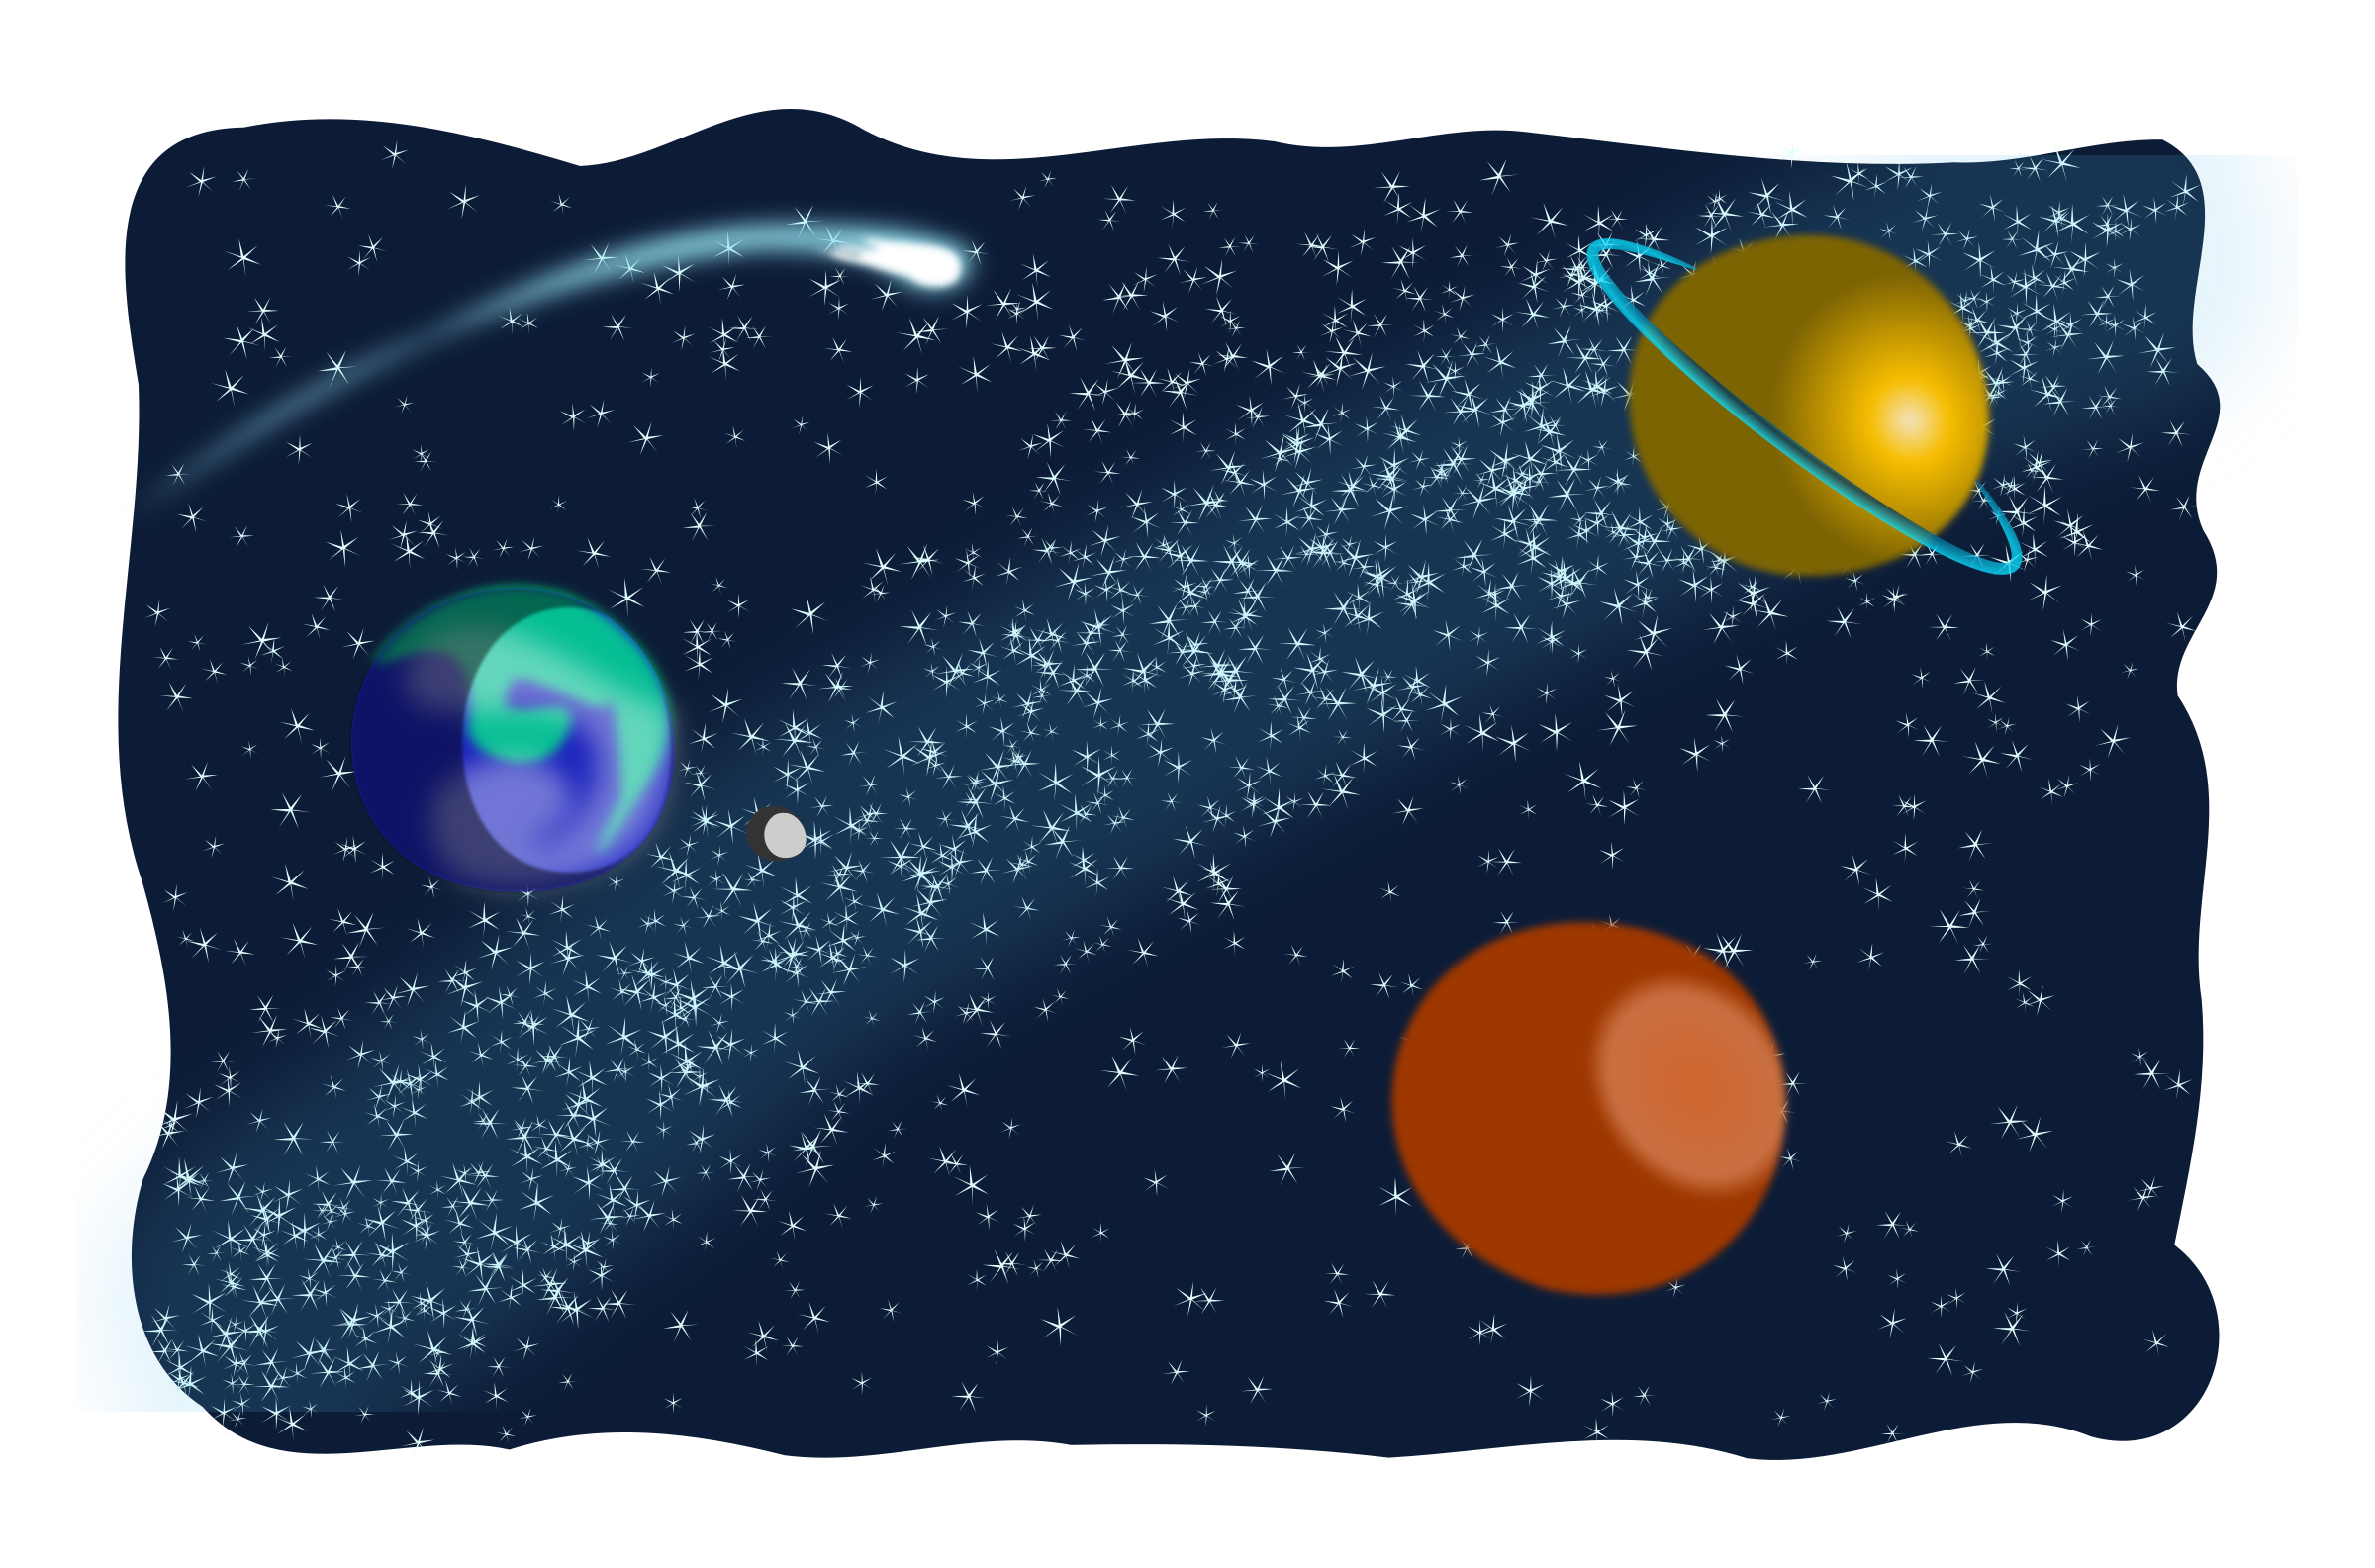 Galaxy clipart artistic. Outer space super ideas